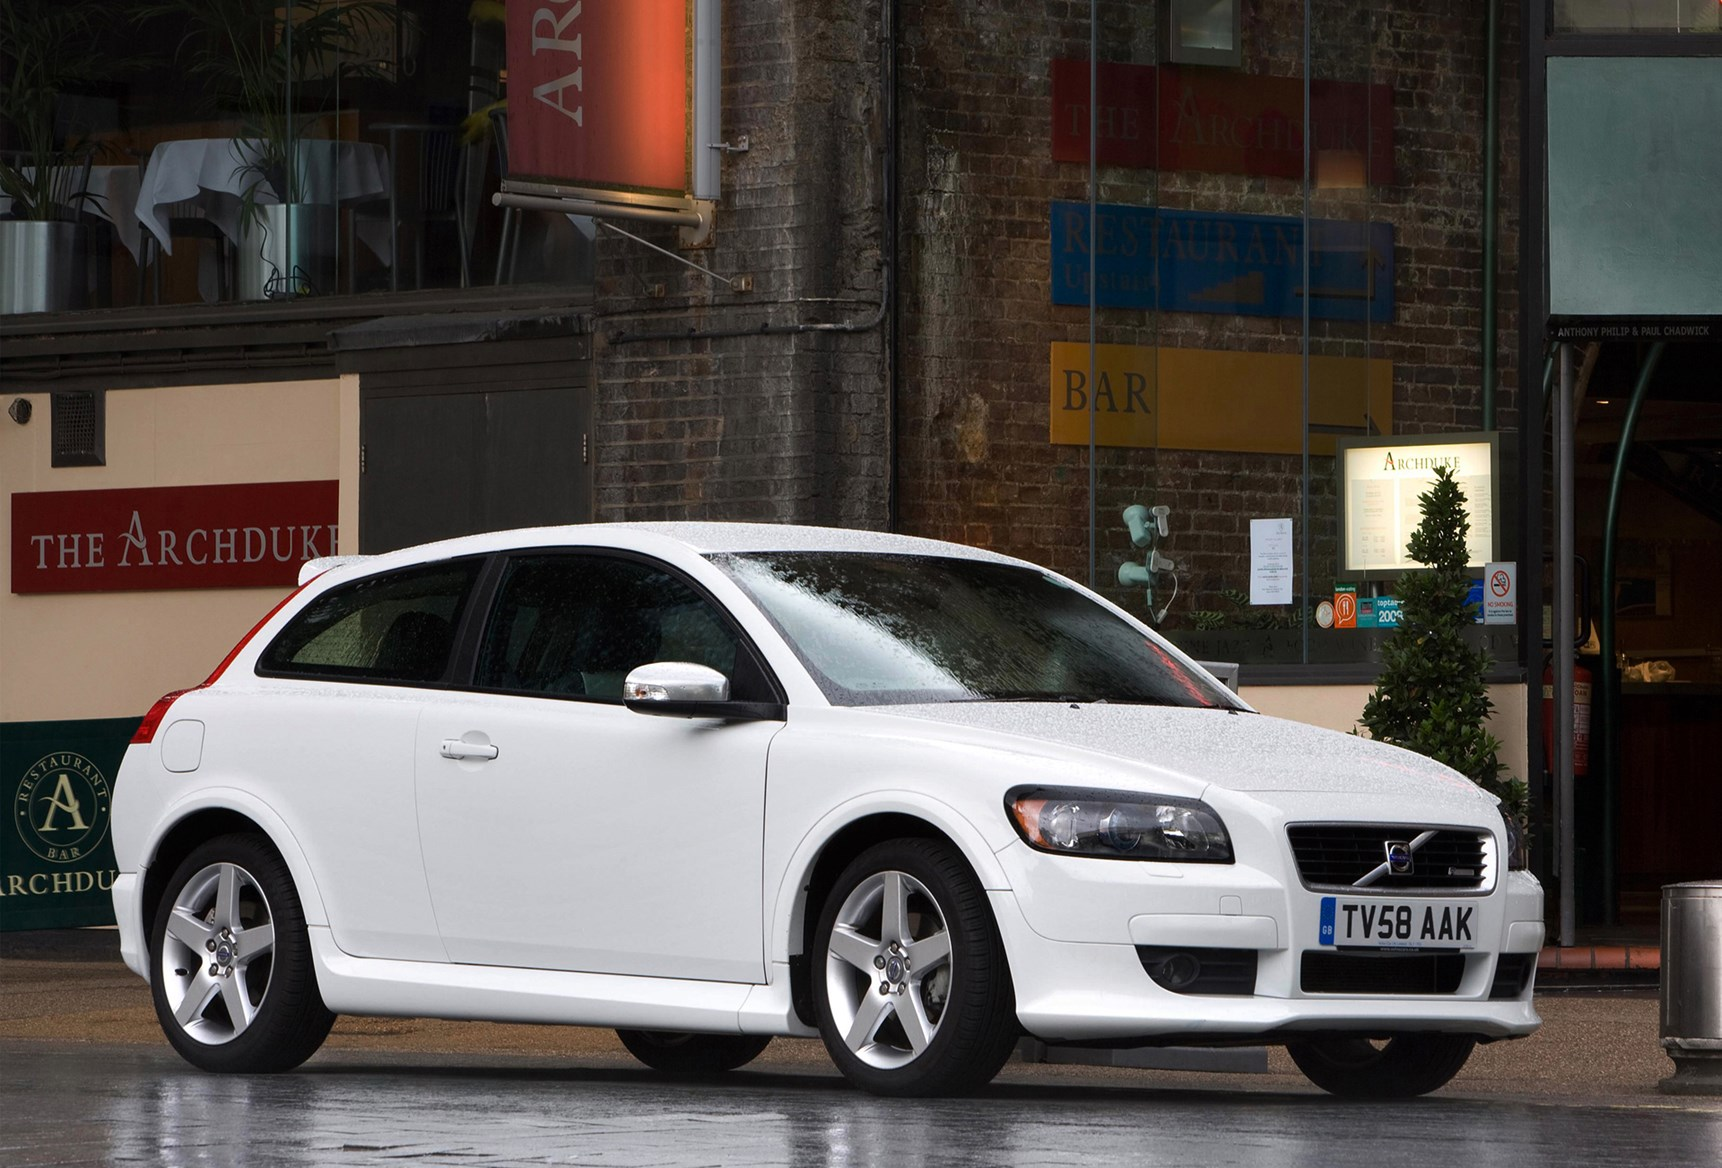 086262600_1227612273 Great Description About Volvo C30 R Design with Interesting Gallery Cars Review